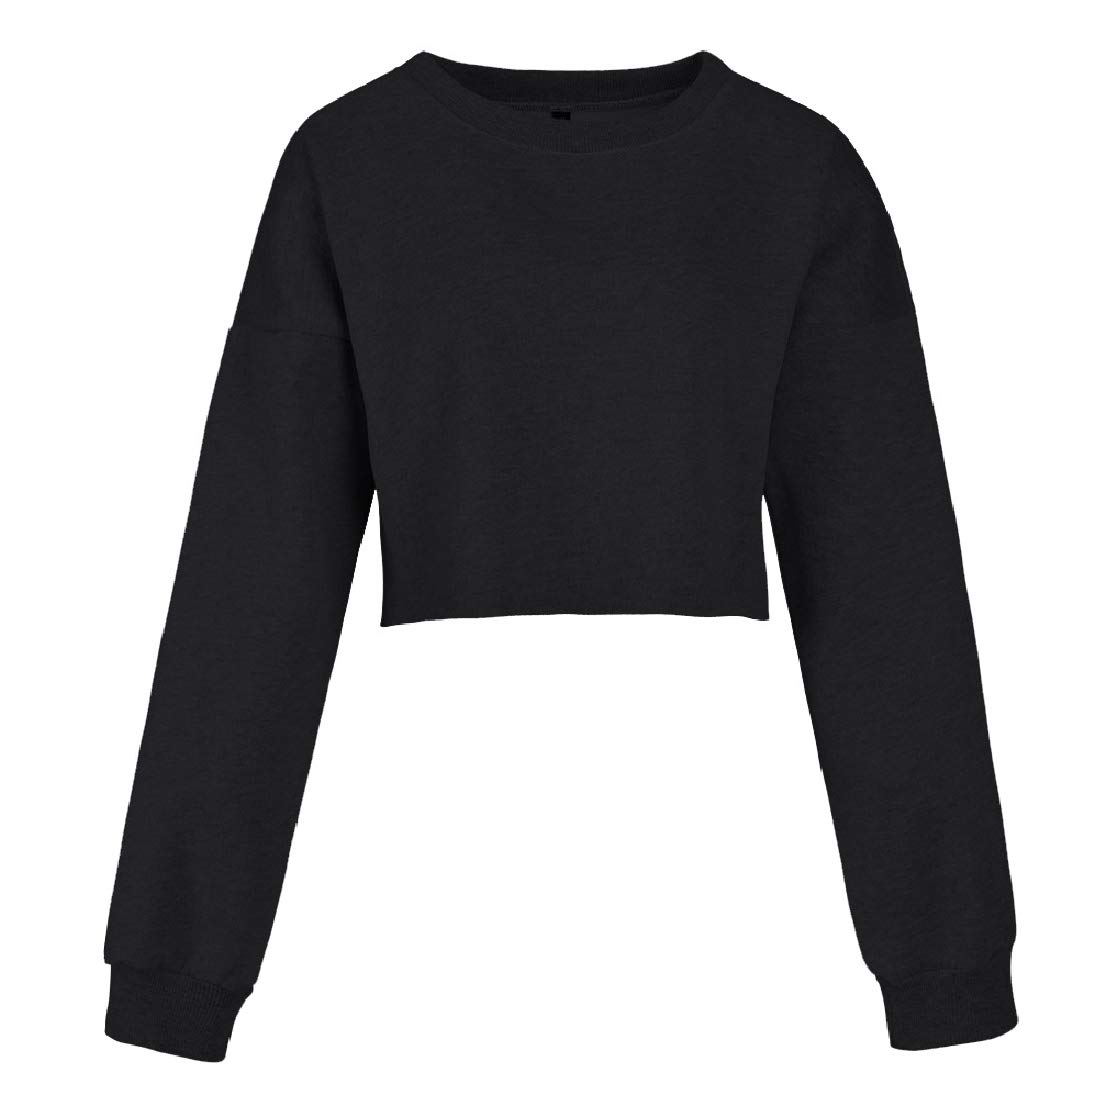 YUNY Women Crop Short Long Sleeve Round Neck Solid Loose Skinny Sweatshirts Black XS